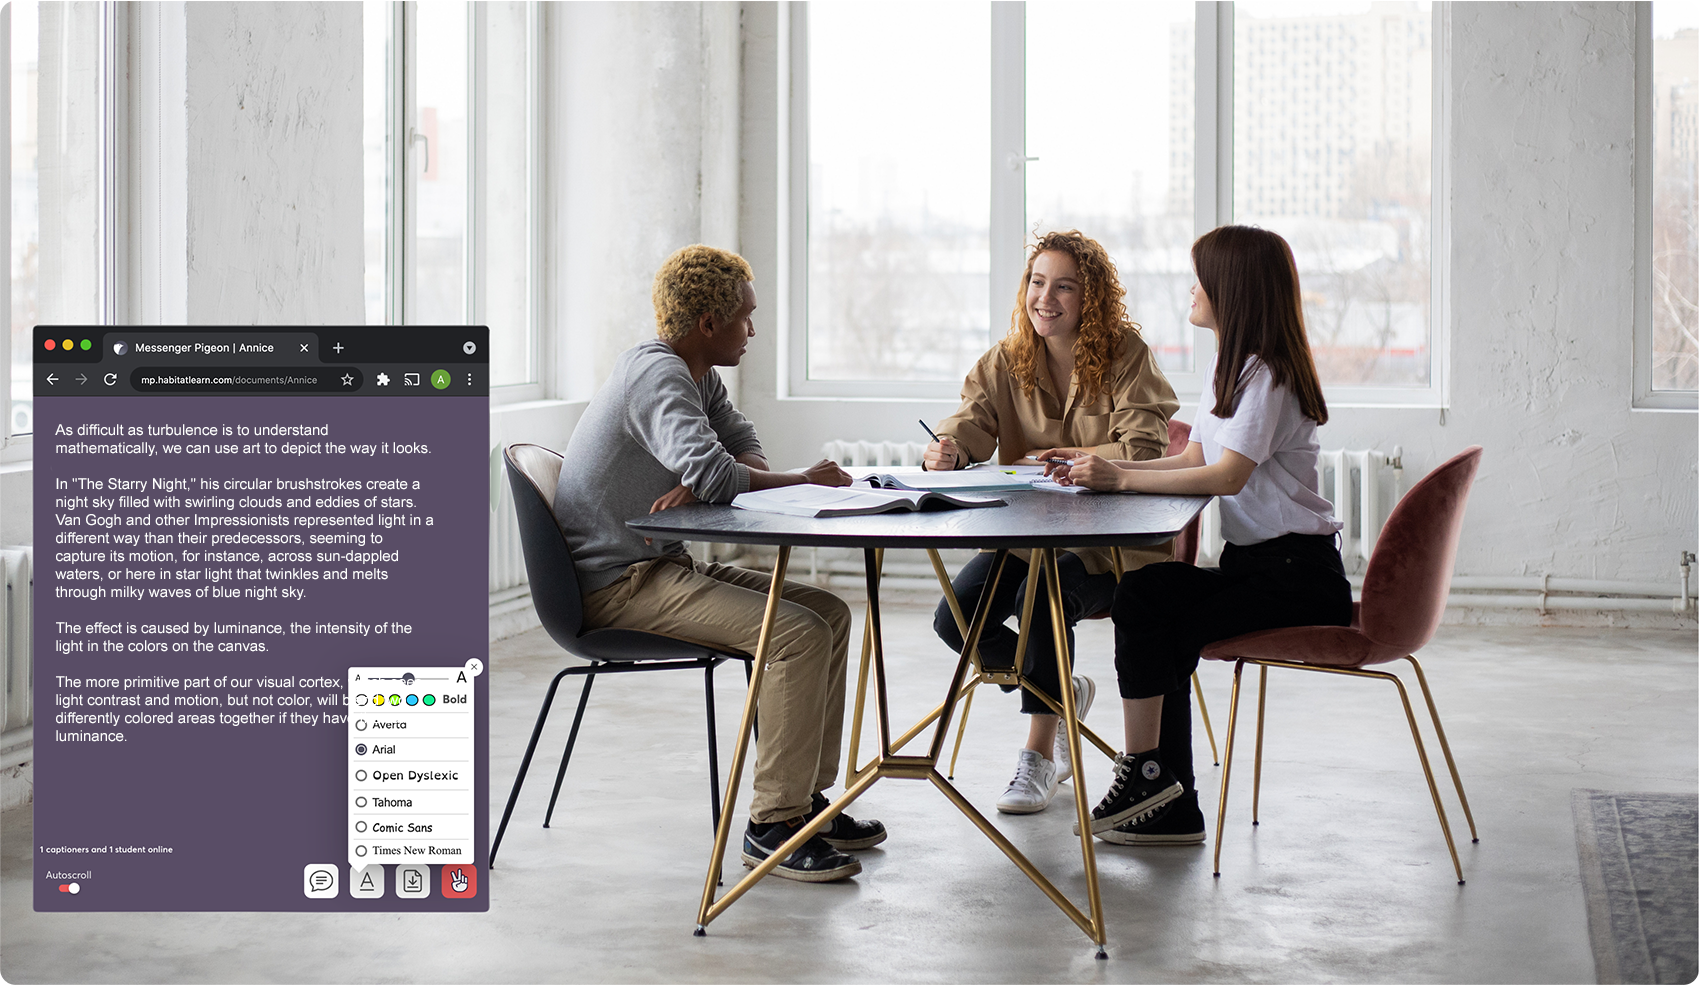 Screen image of messenger pigeon in the corner of a digital meeting on a laptop.